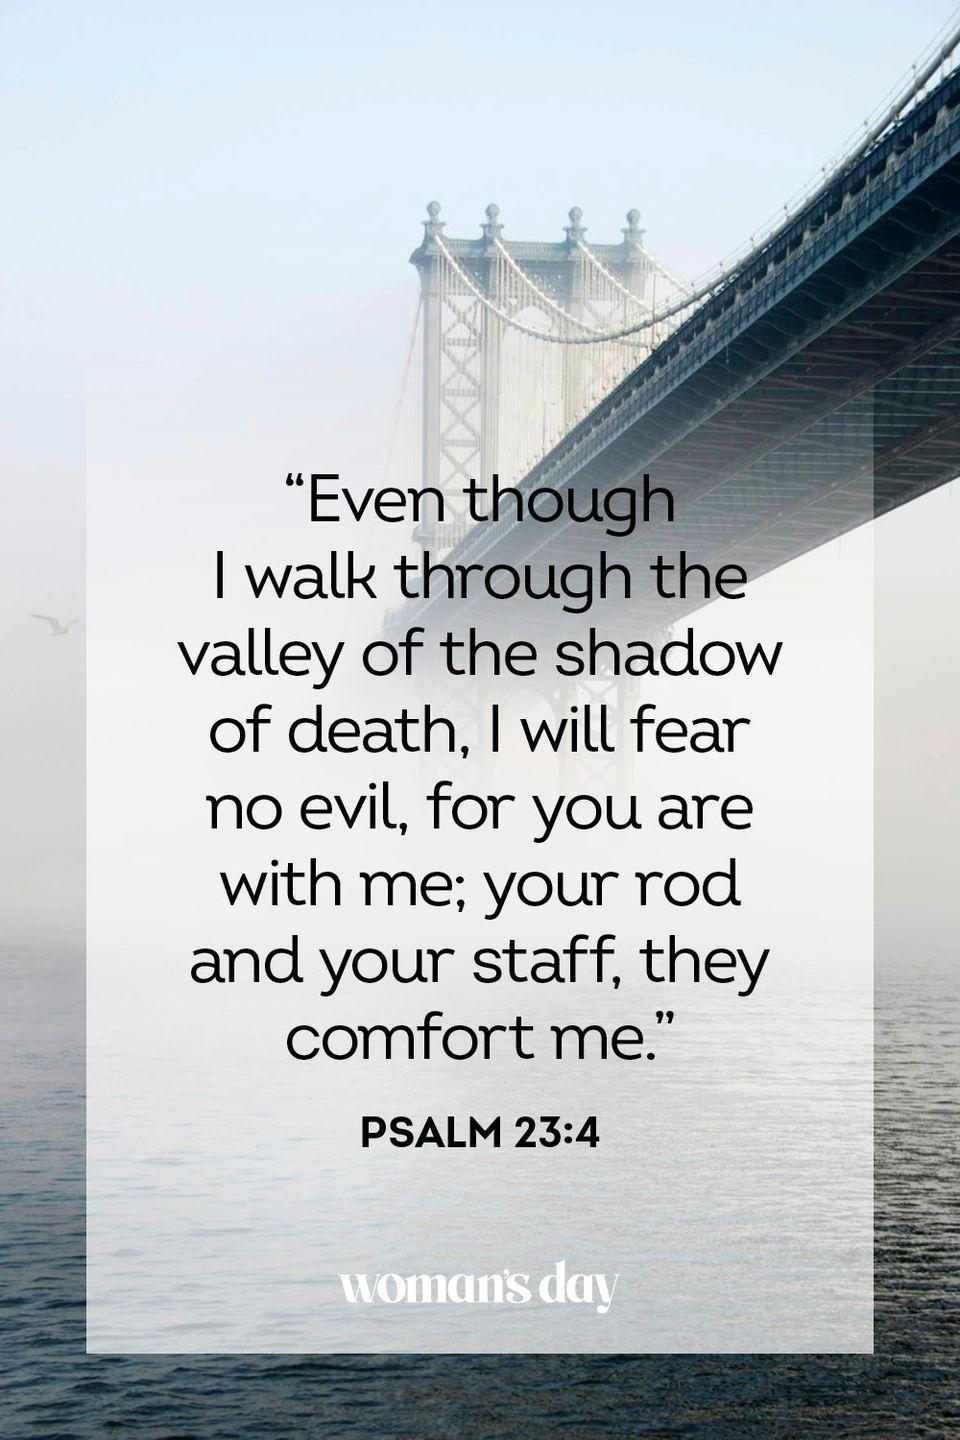 "<p>""Even though I walk through the valley of the shadow of death, I will fear no evil, for you are with me; your rod and your staff, they comfort me.""</p><p><strong>The Good News: </strong>Even death cannot separate us from the never-failing love of God.</p>"